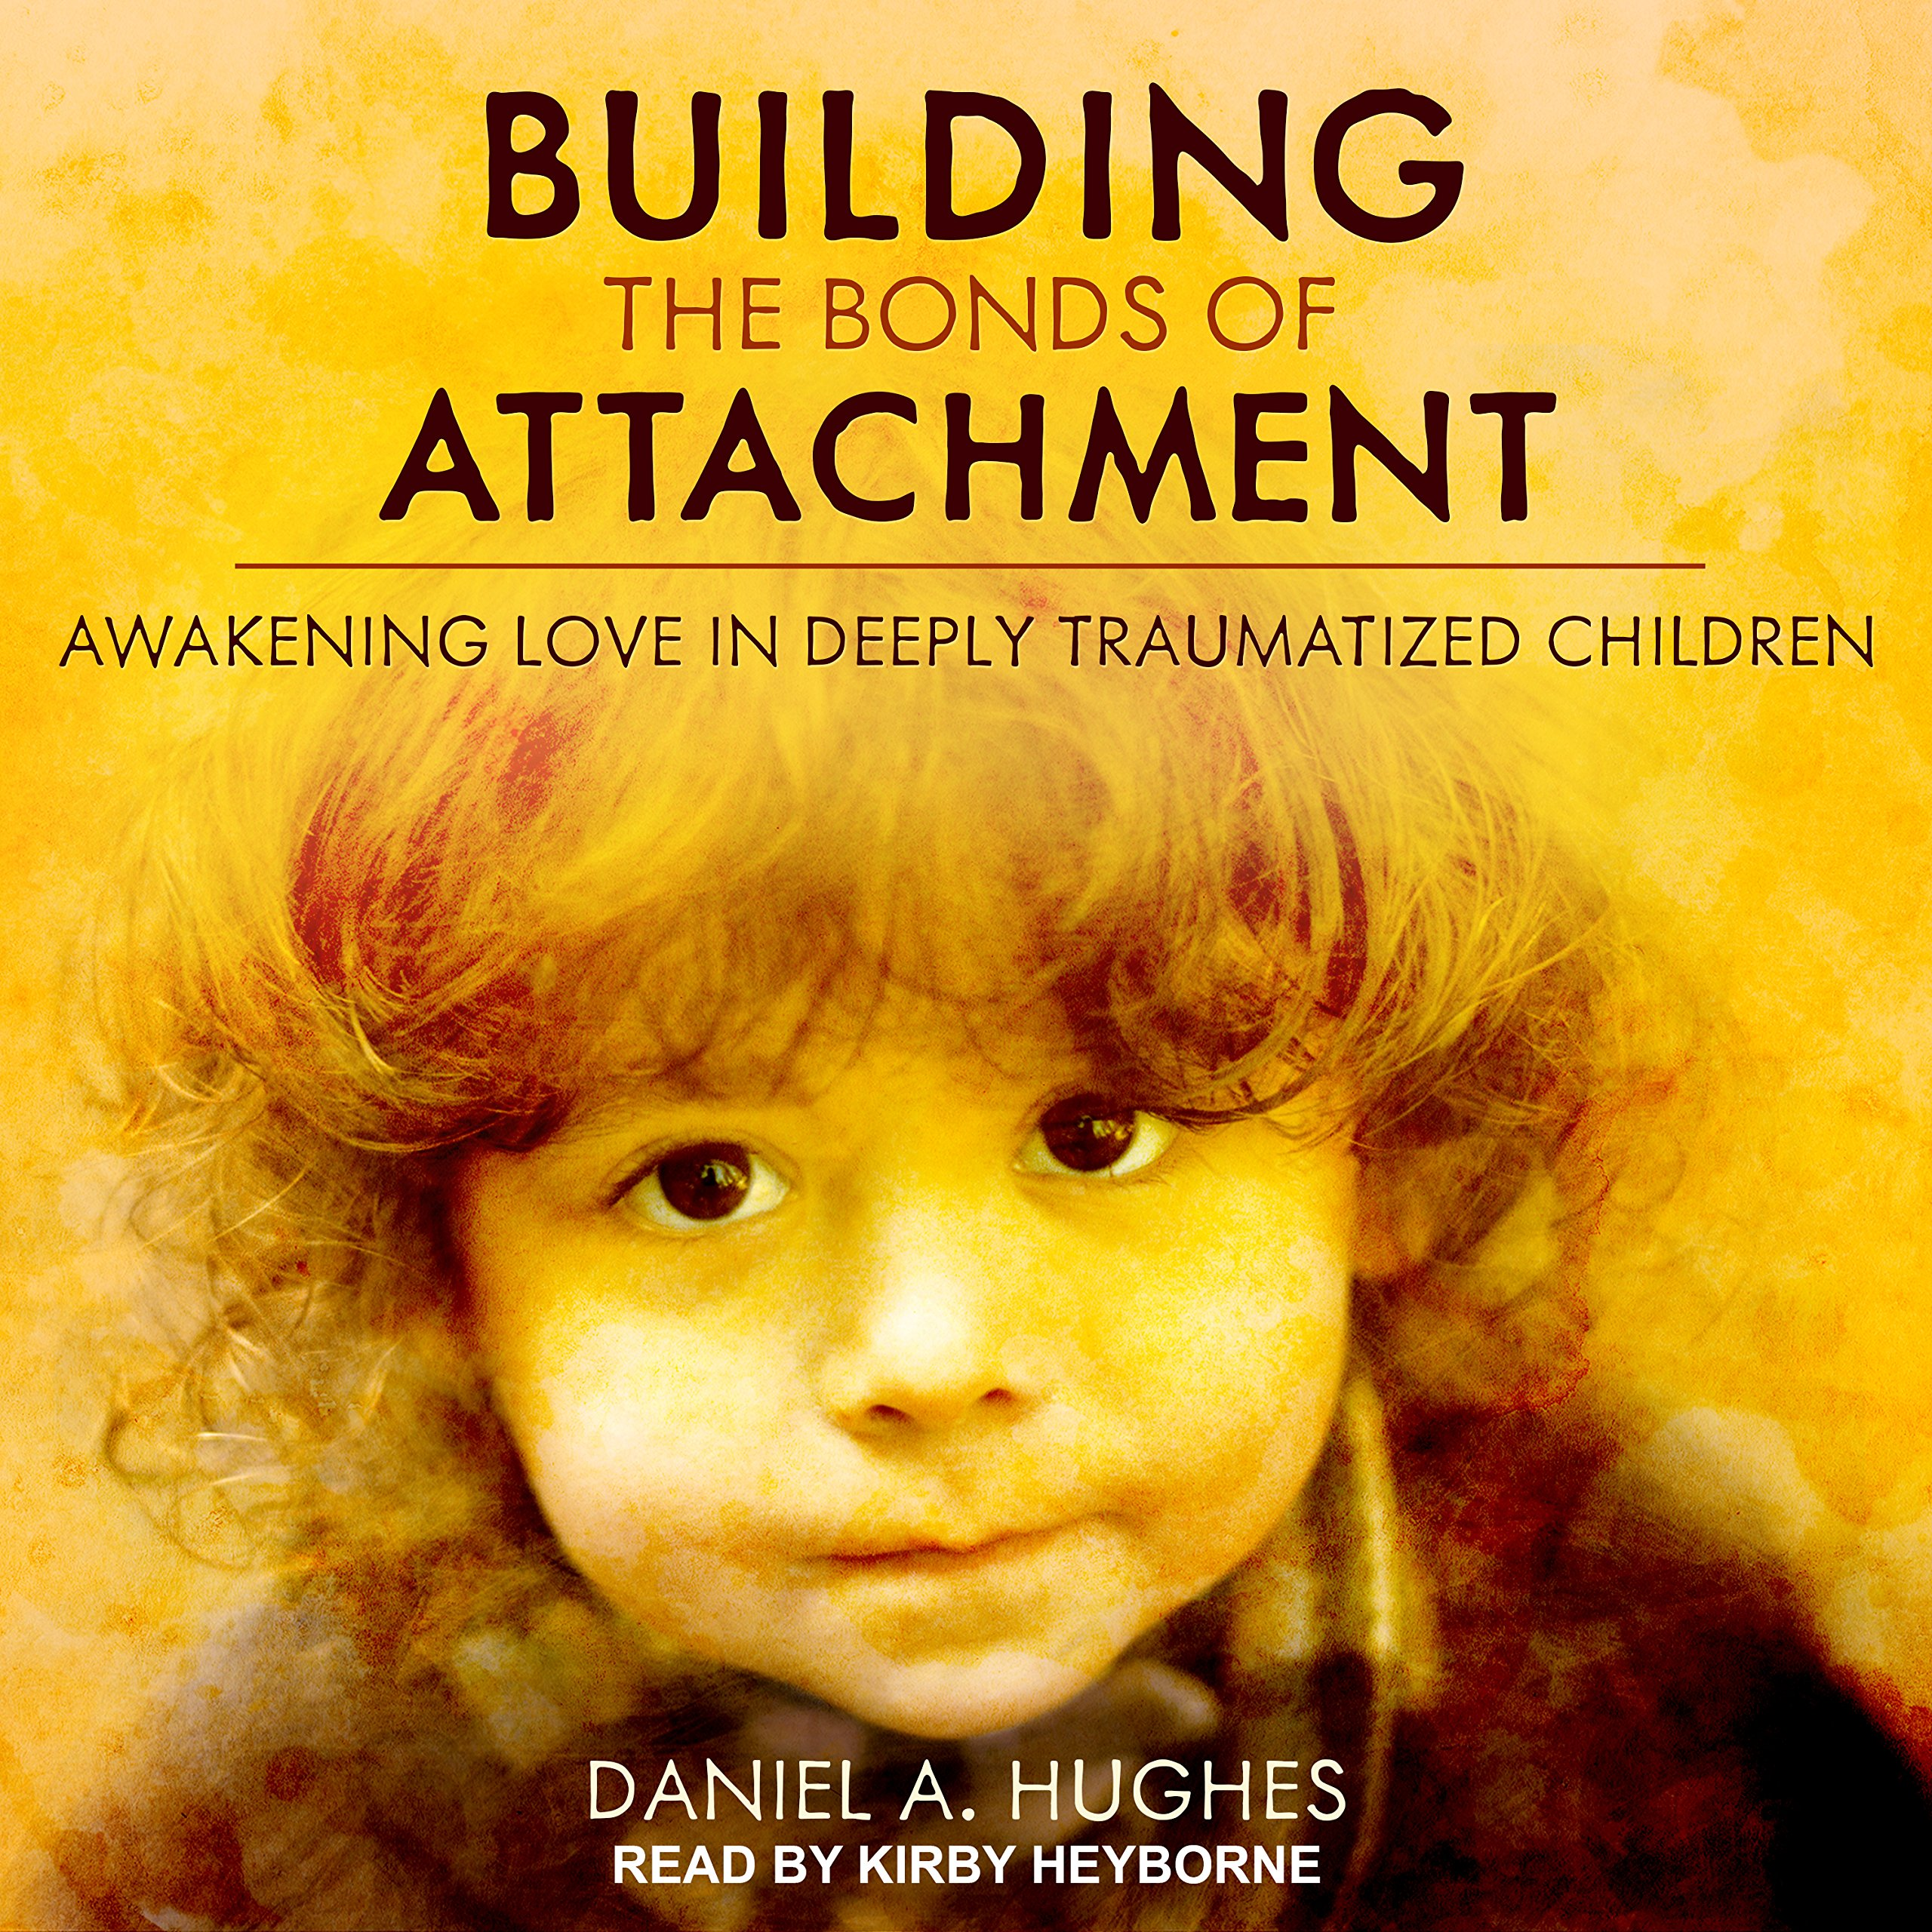 Building the Bonds of Attachment: Awakening Love in Deeply Traumatized Children by Tantor Audio (Image #1)